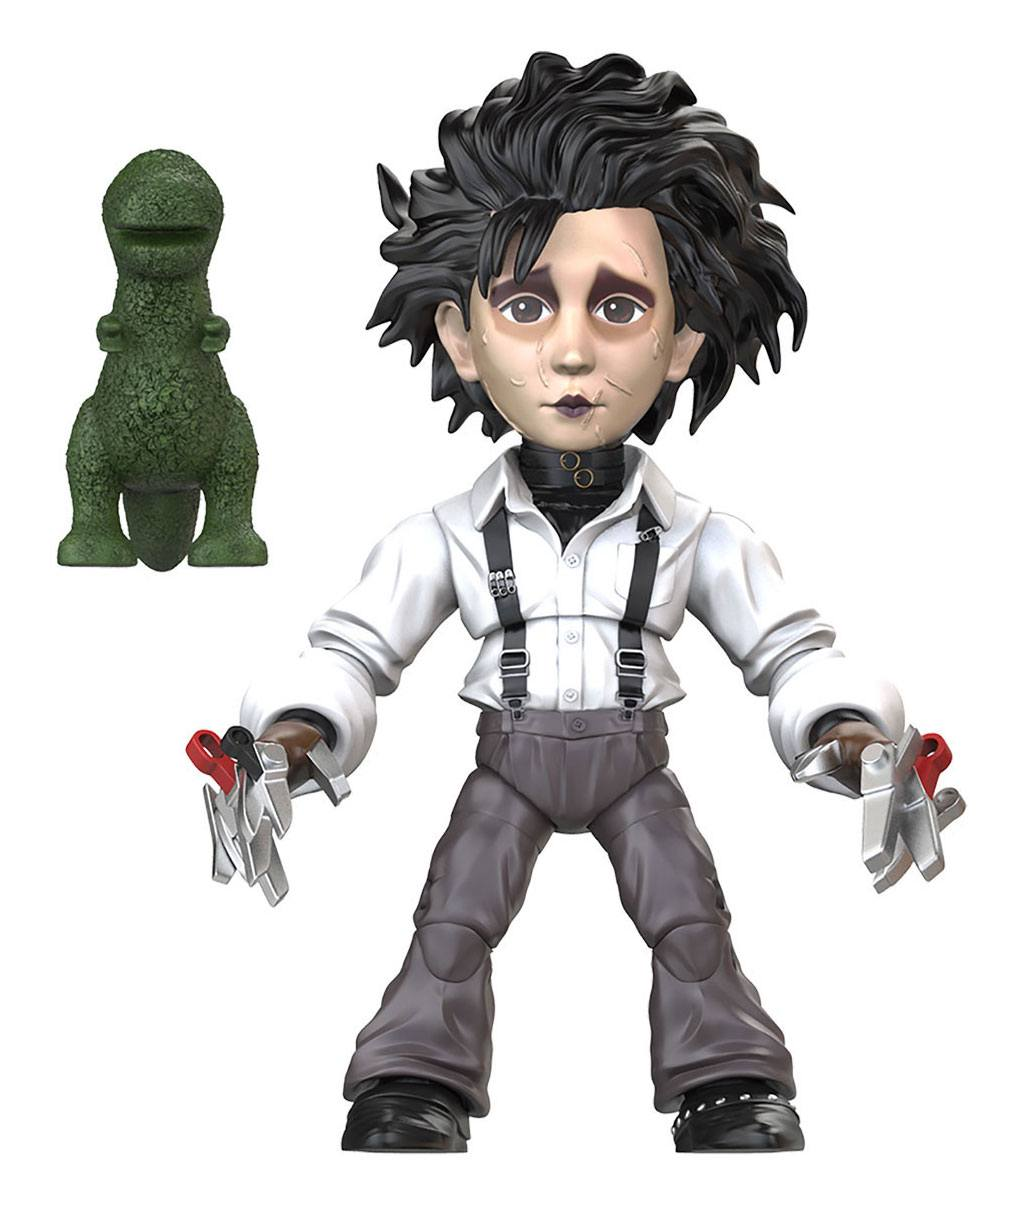 Edward Scissorhands Action Vinyls Mini Figure 8 cm Edward